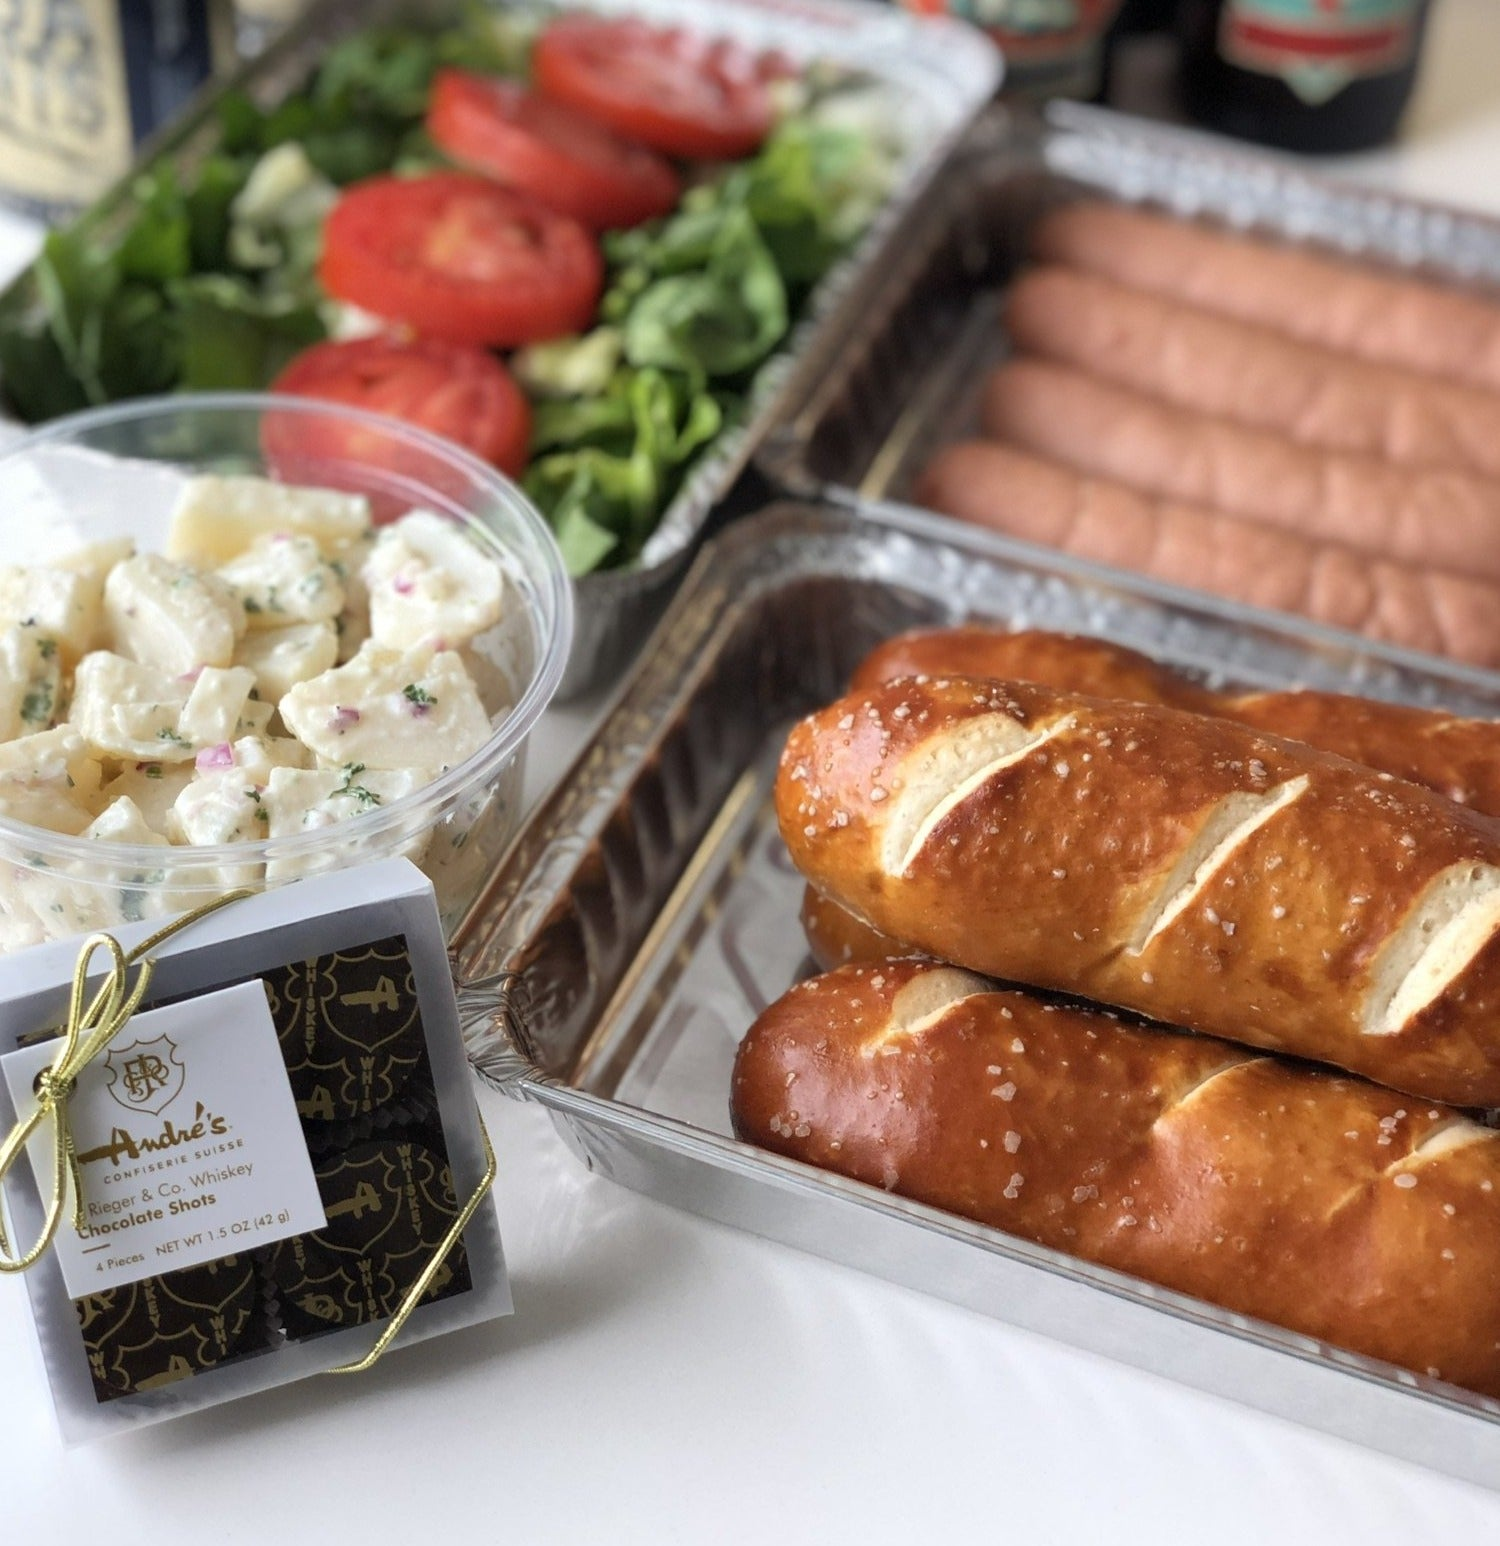 Beer N Brats Pack (Bratwurst or Knackwurst w/Bread, Salads, Root Beers & Chocolates for 4) Pick up at Overland Park Andre's